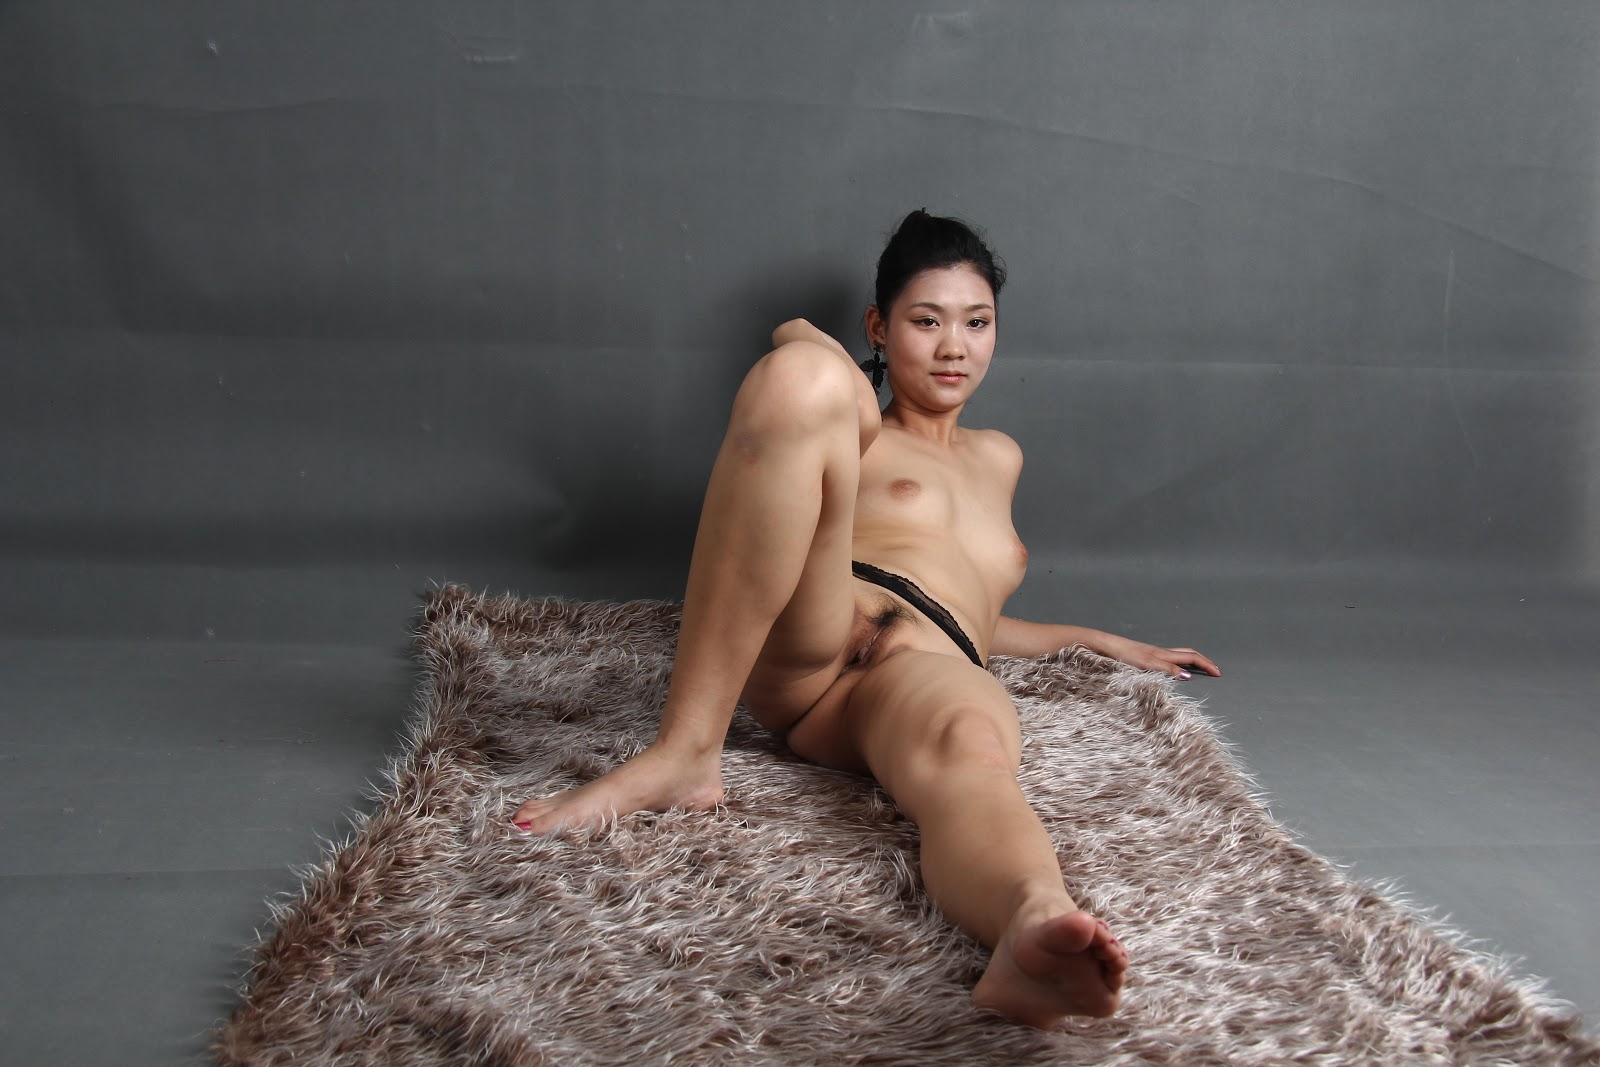 Chinese Nude_Art_Photos_-_258_-_YangYang_Vol_7.rar Chinese_Nude_Art_Photos_-_258_-_YangYang_Vol_7.rar.IMG_2089